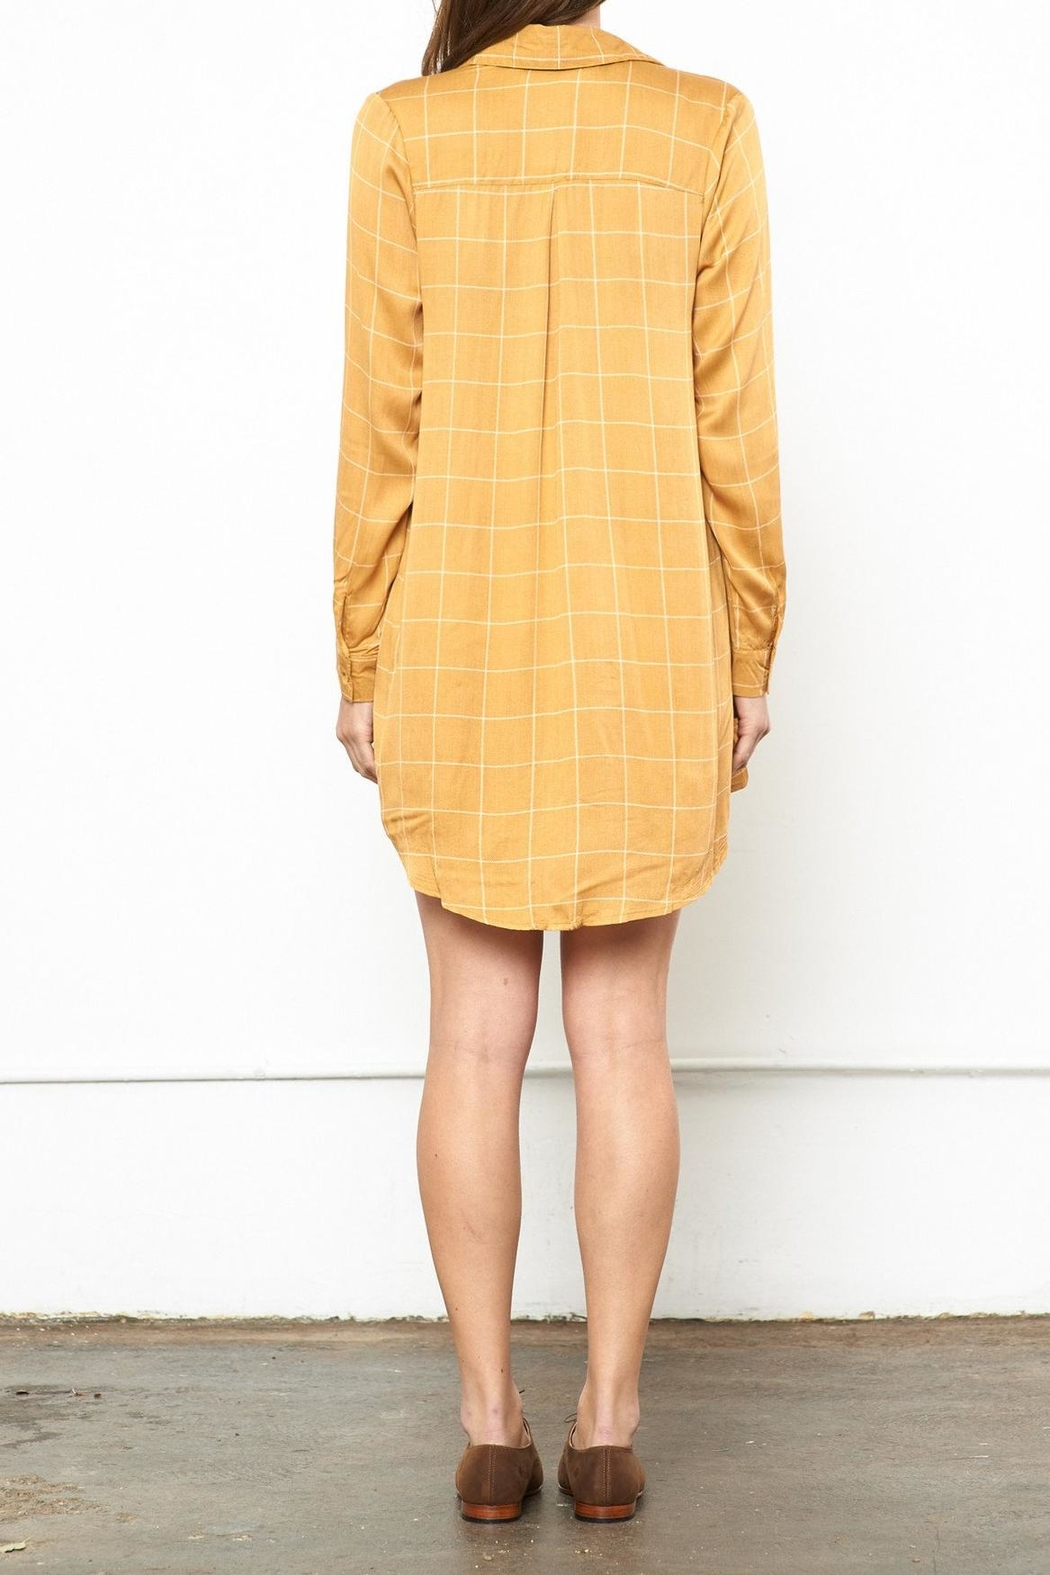 Knot Sisters Mustard Shirt Dress - Side Cropped Image